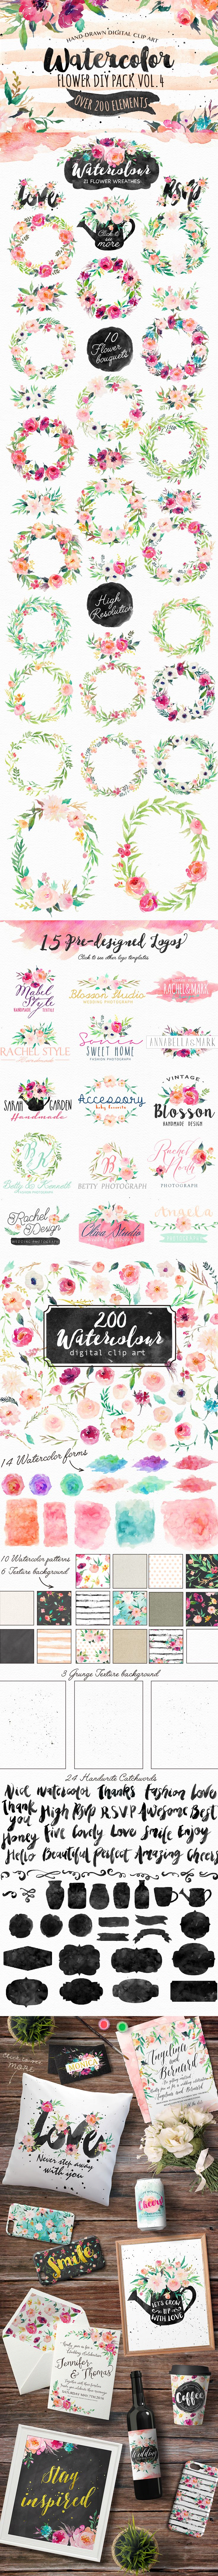 hand drawn digital clip art floral wreath watercolor painted flowers floral girly feminine